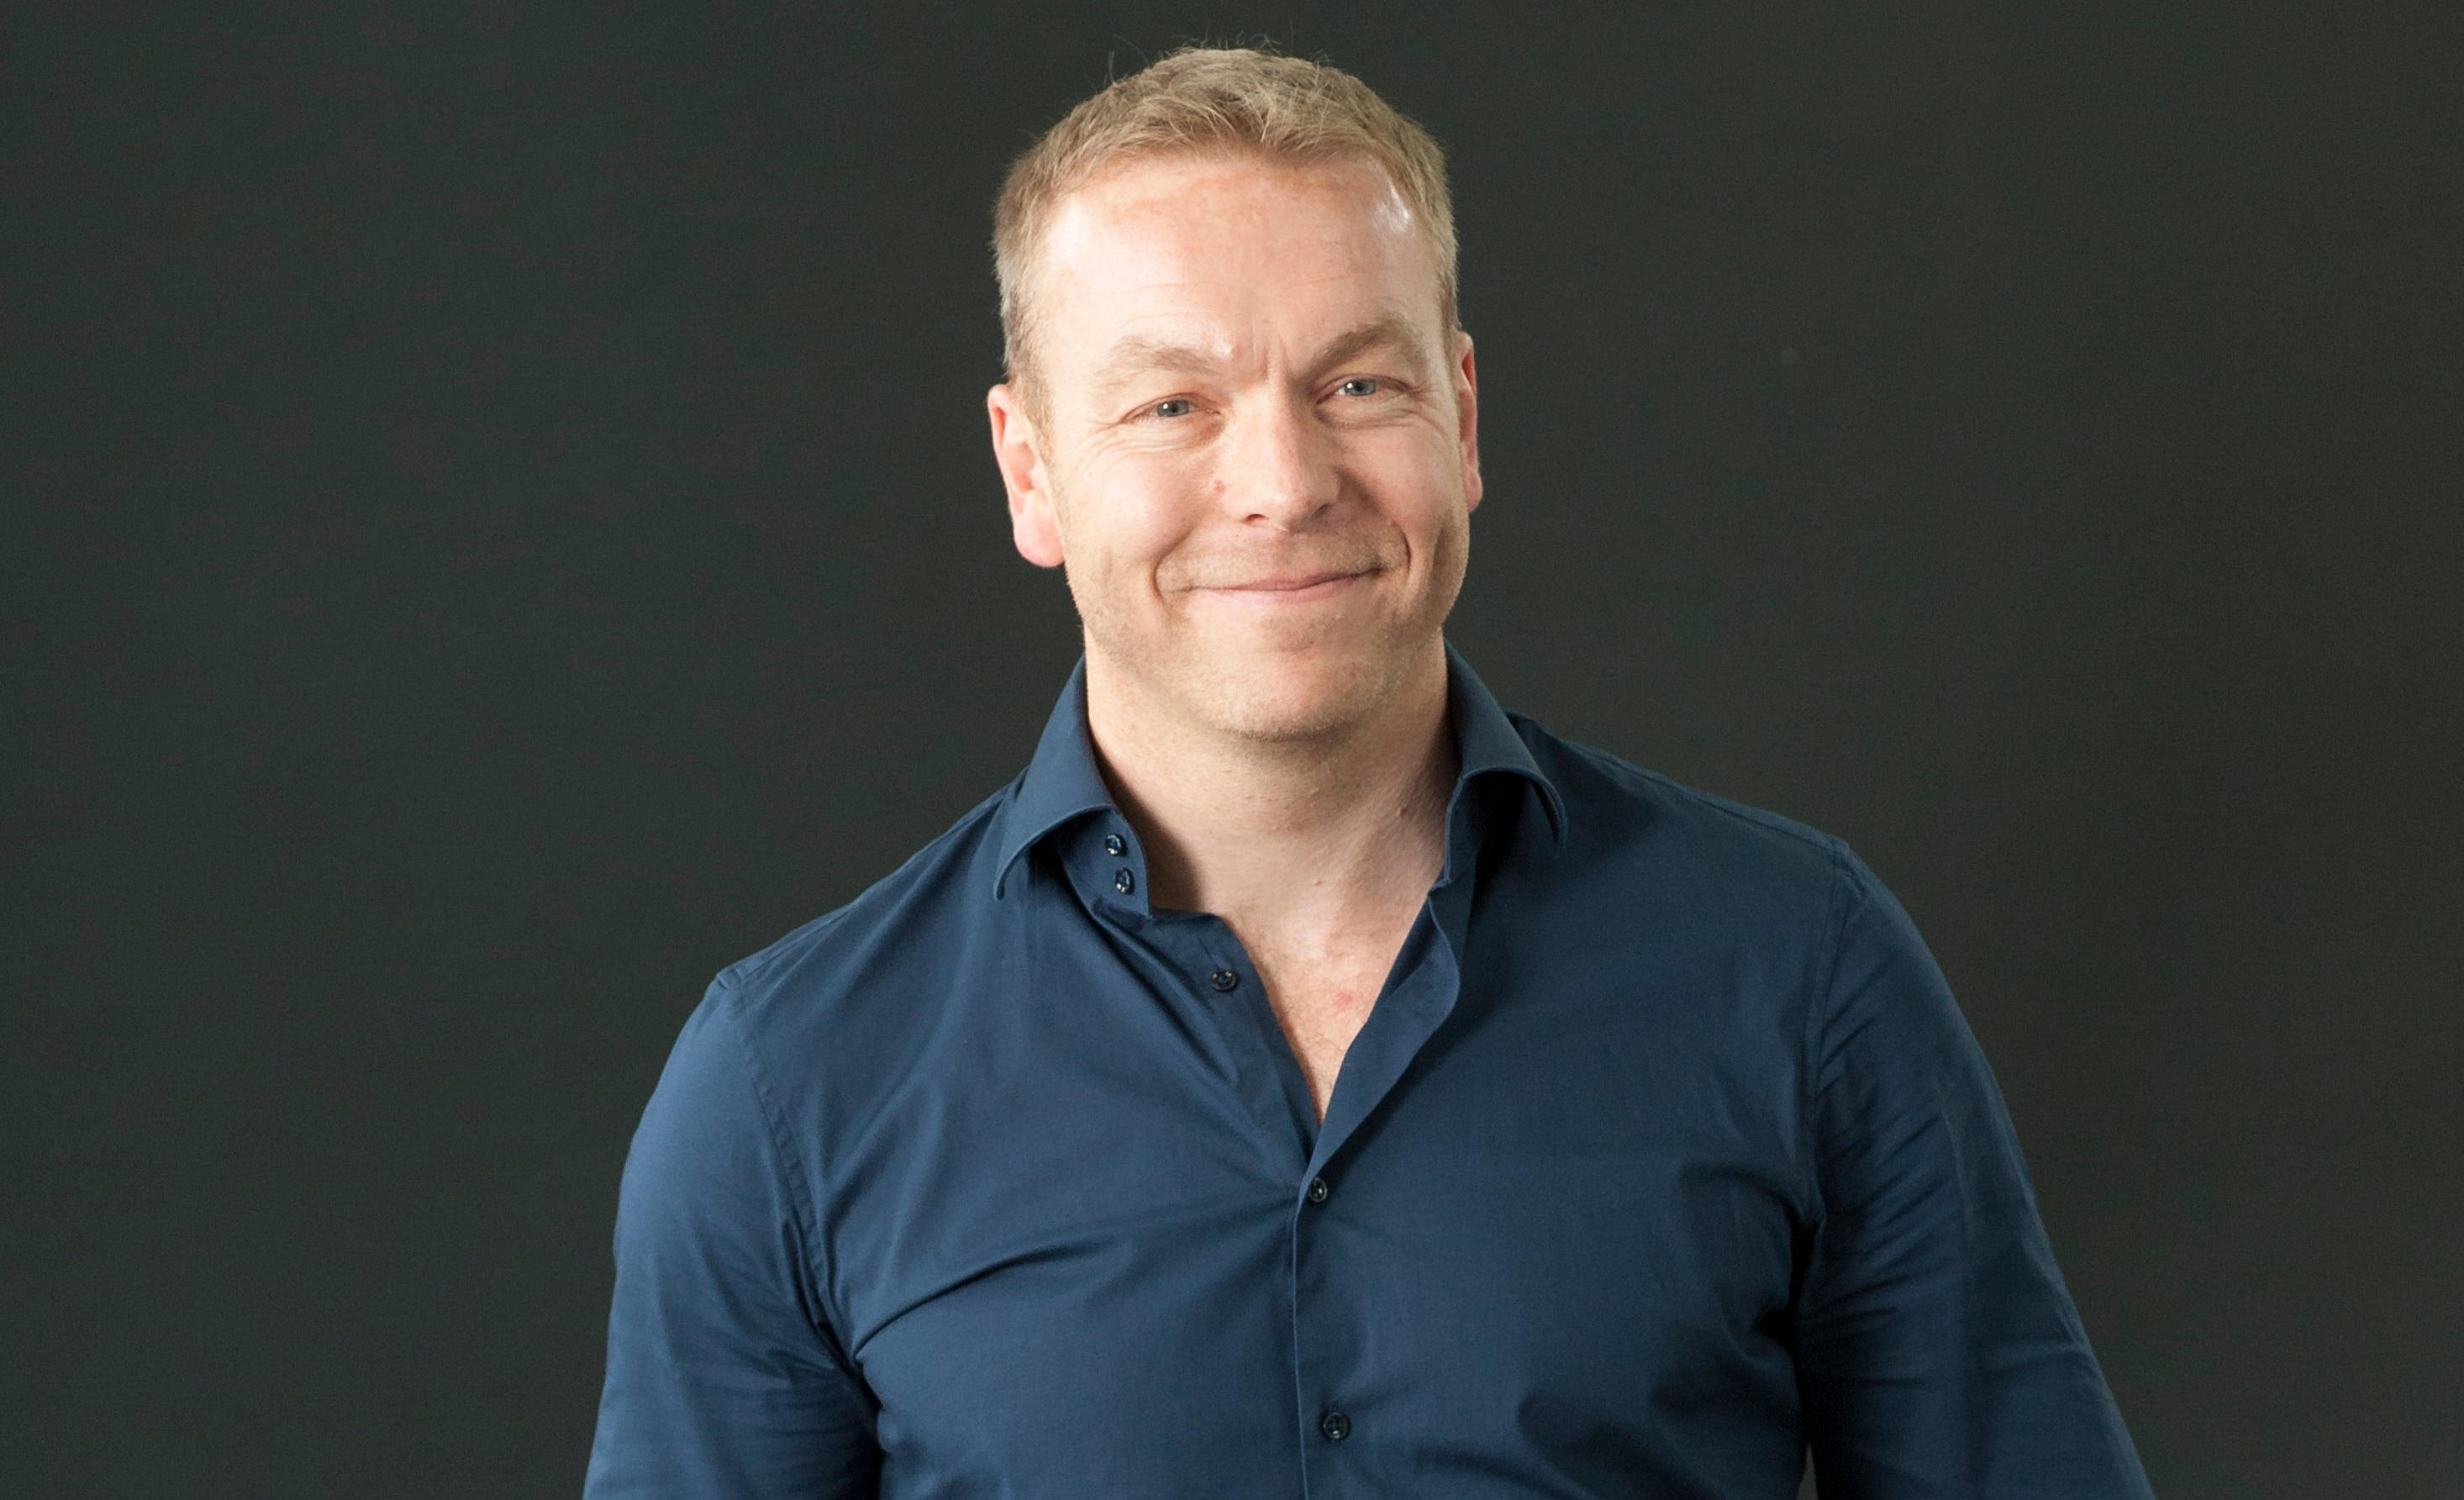 Former track cyclist Chris Hoy appearing at the Edinburgh International Book Festival (Lorenzo Dalberto/Alamy Live News)